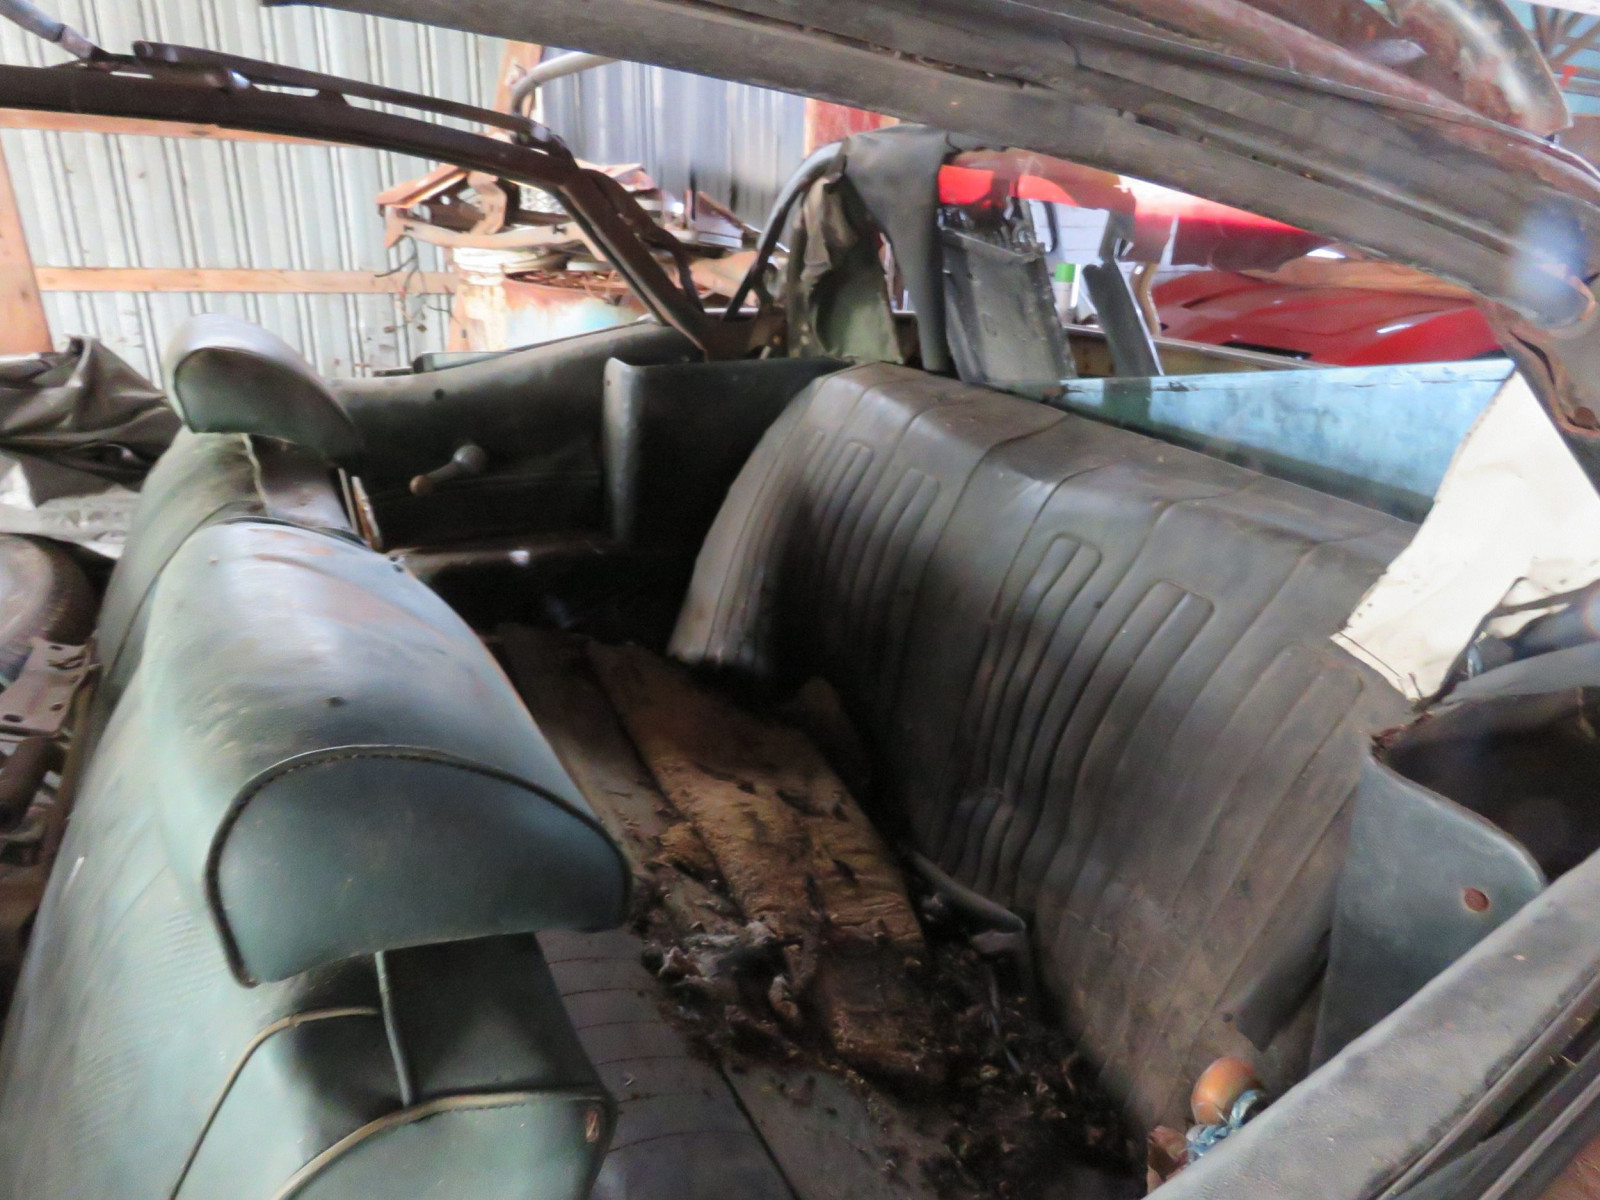 1972 Chevrolet Chevelle Convertible for Project or Parts - Image 4